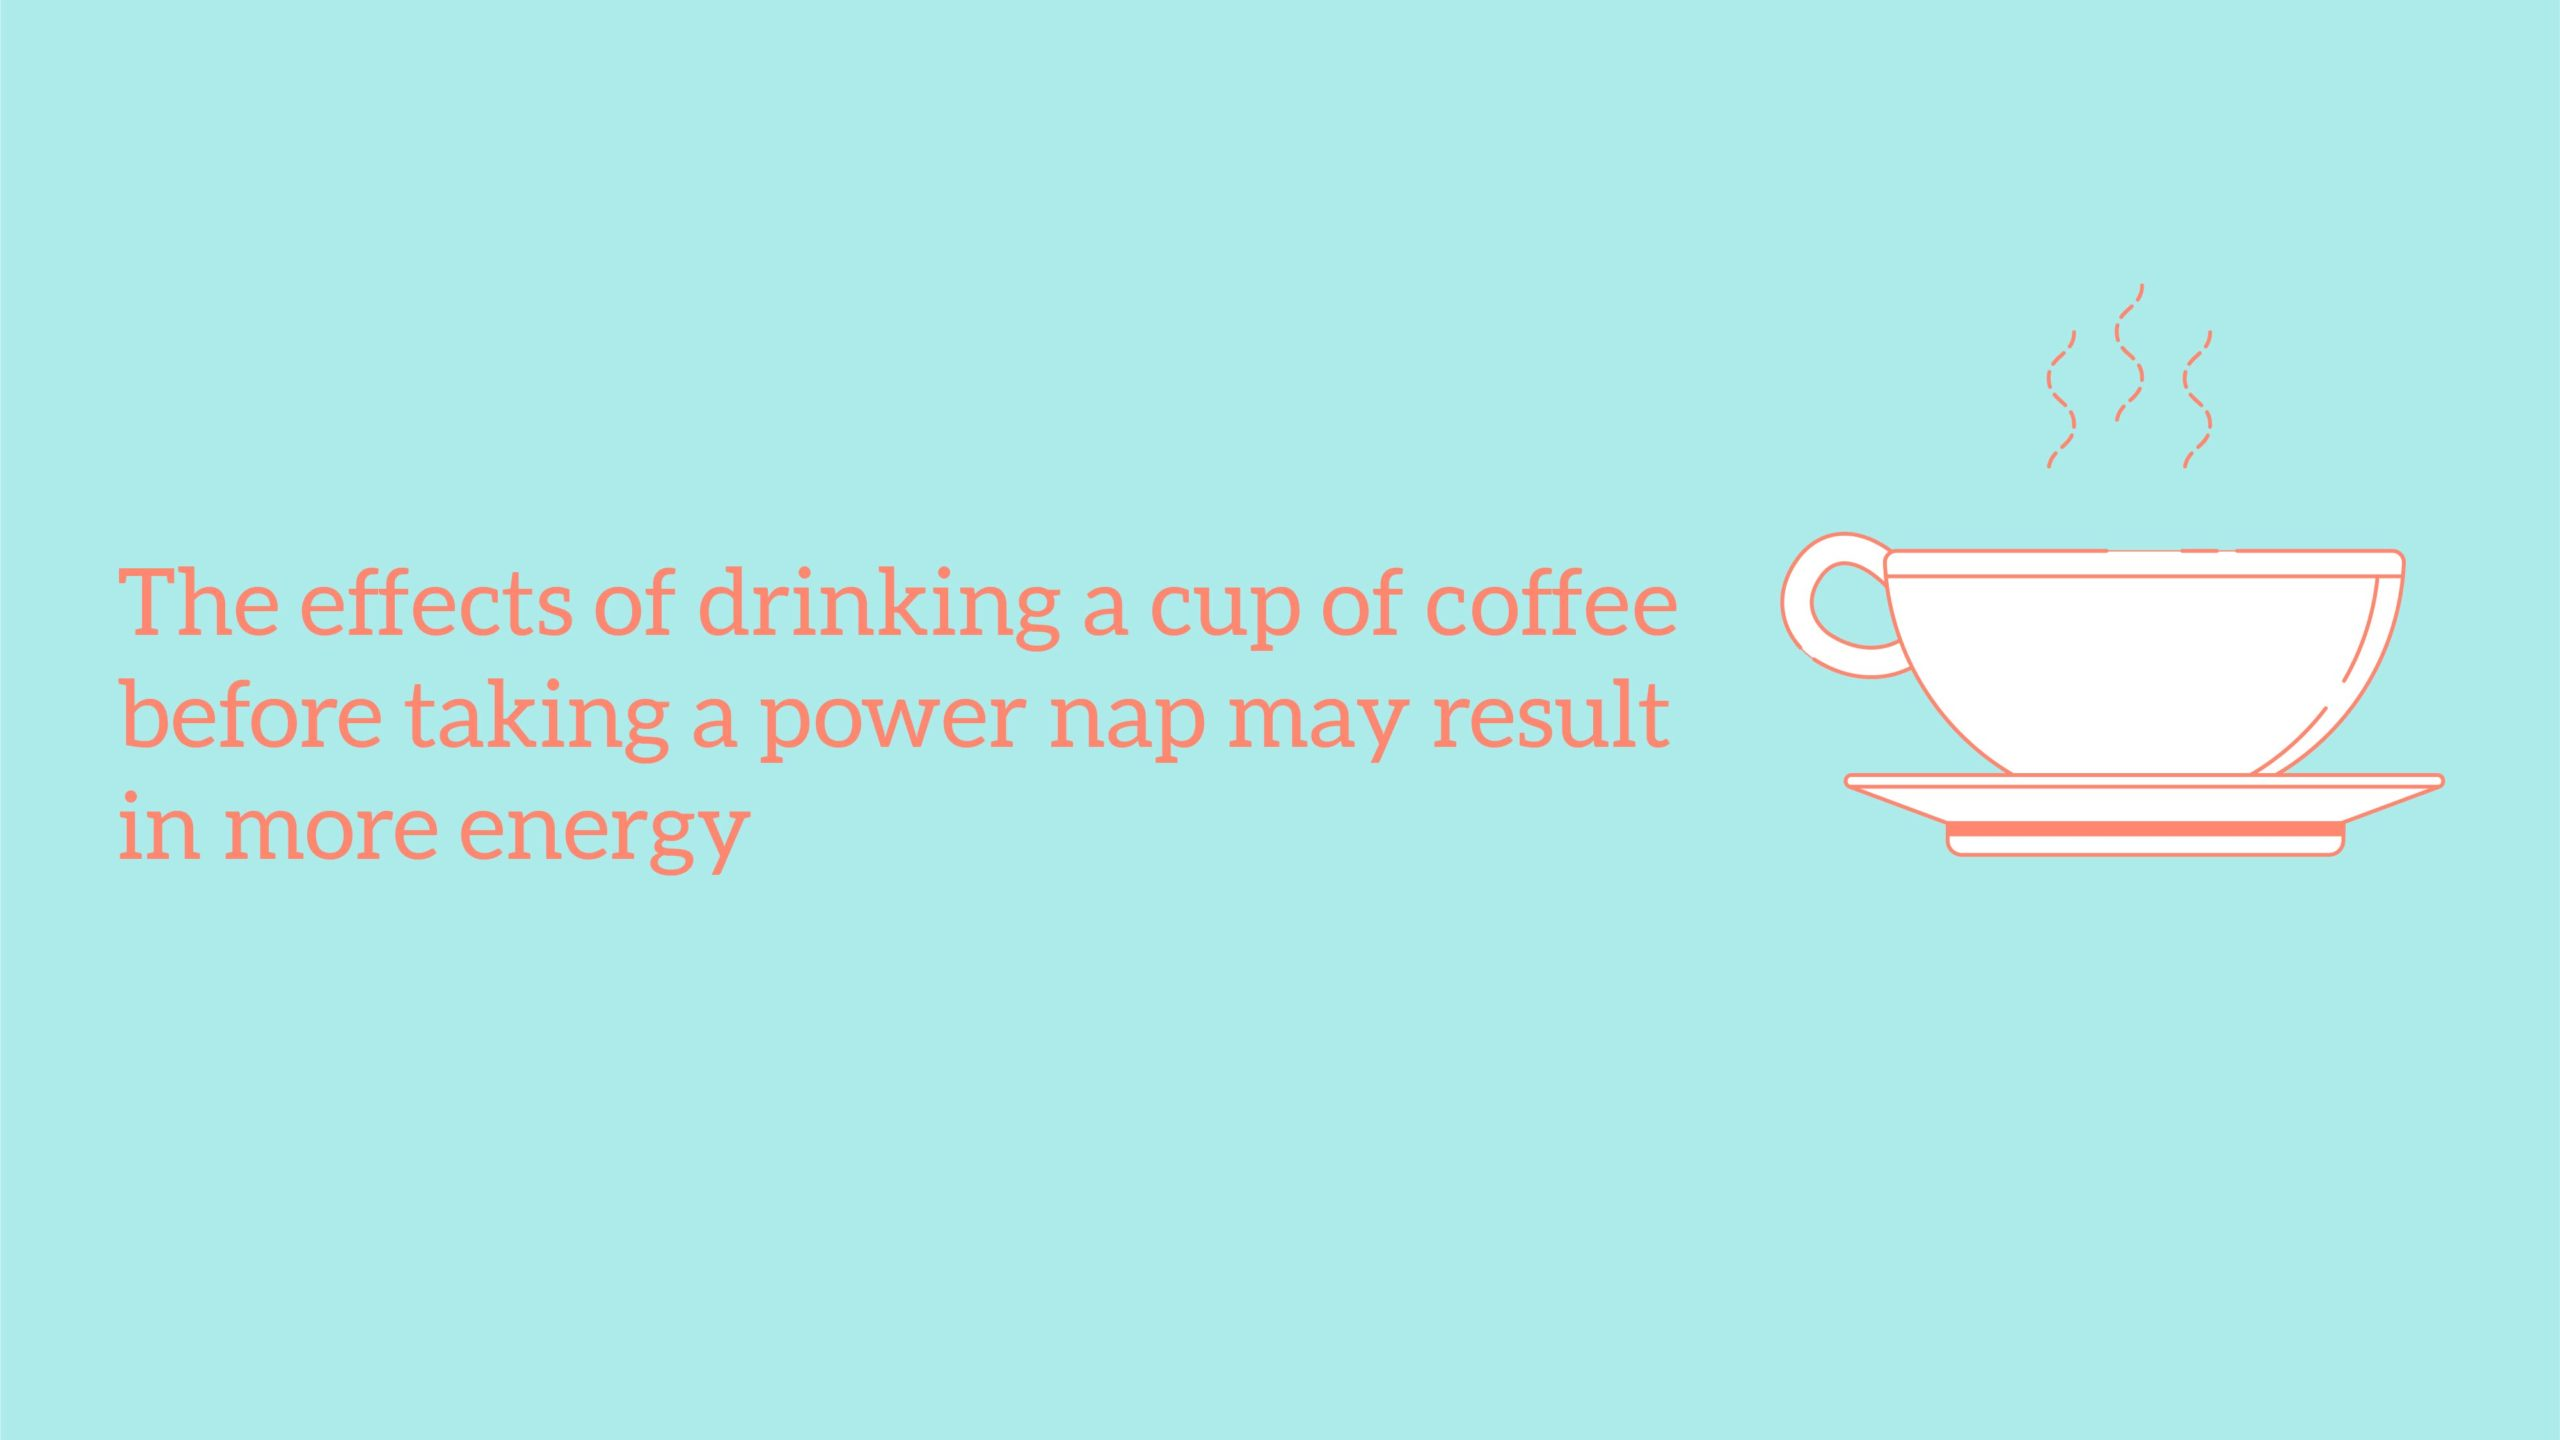 How to Power Nap